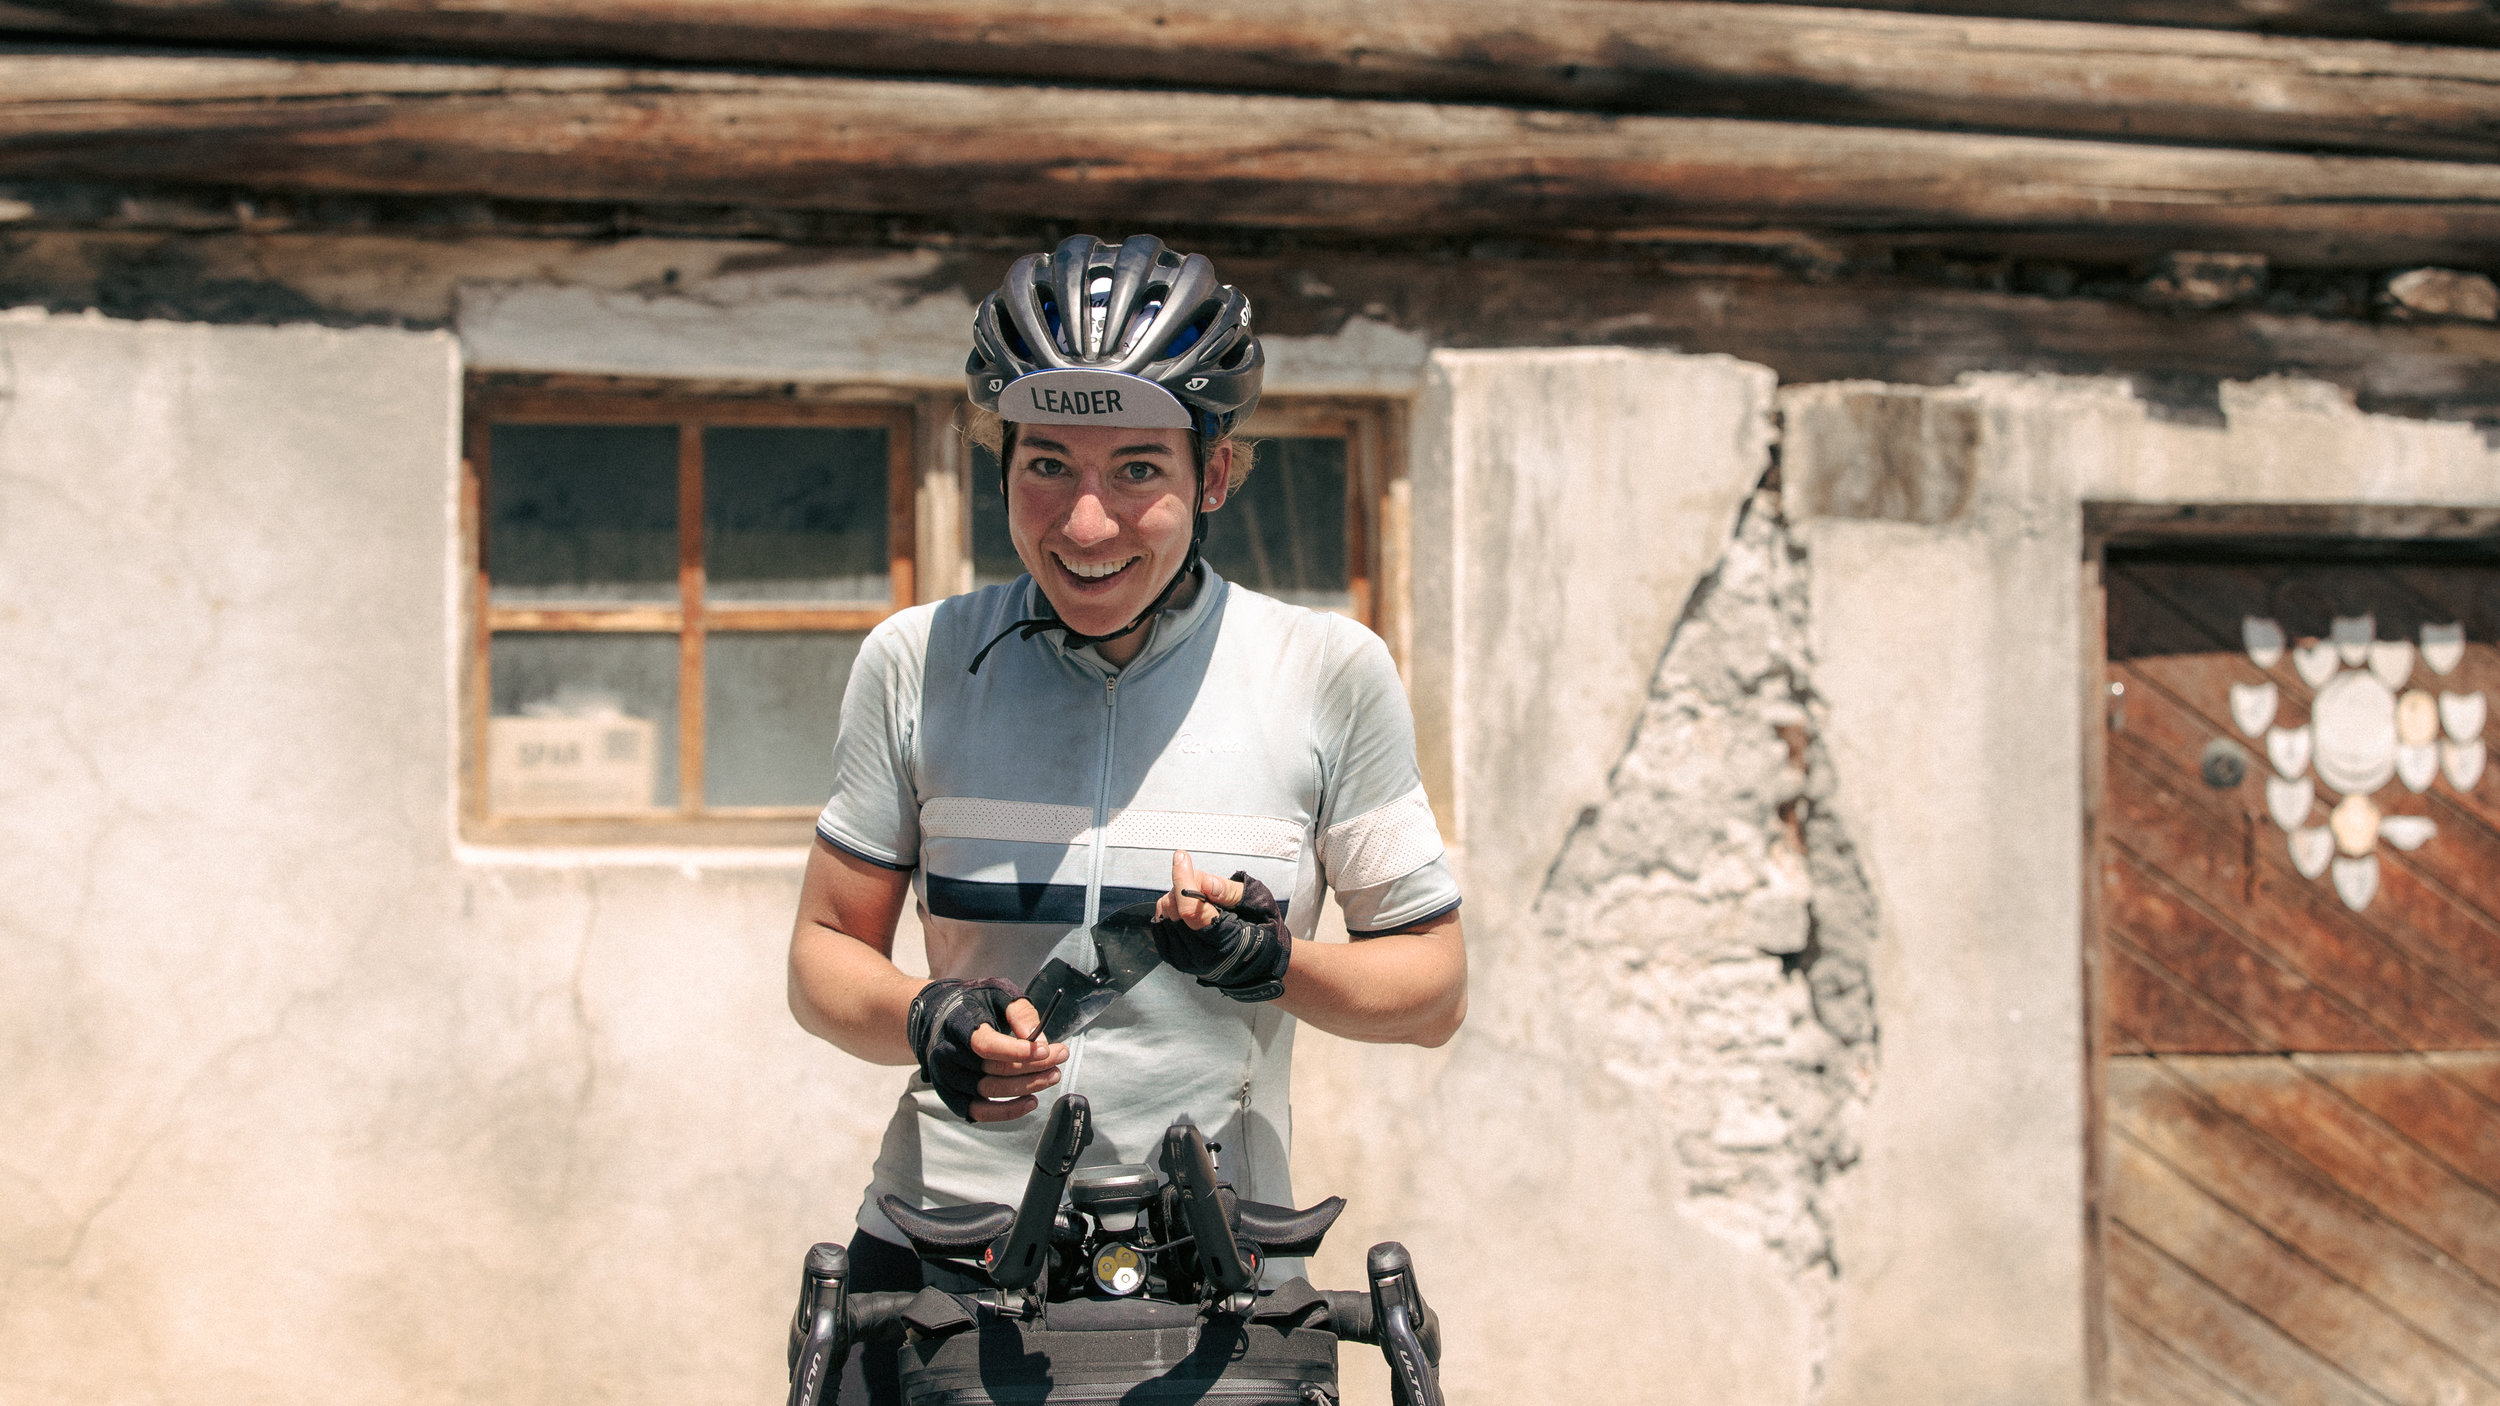 Fiona Kolbinger arrives at #TCRNo7 after 2000km of racing. Photo: Angus Sung©